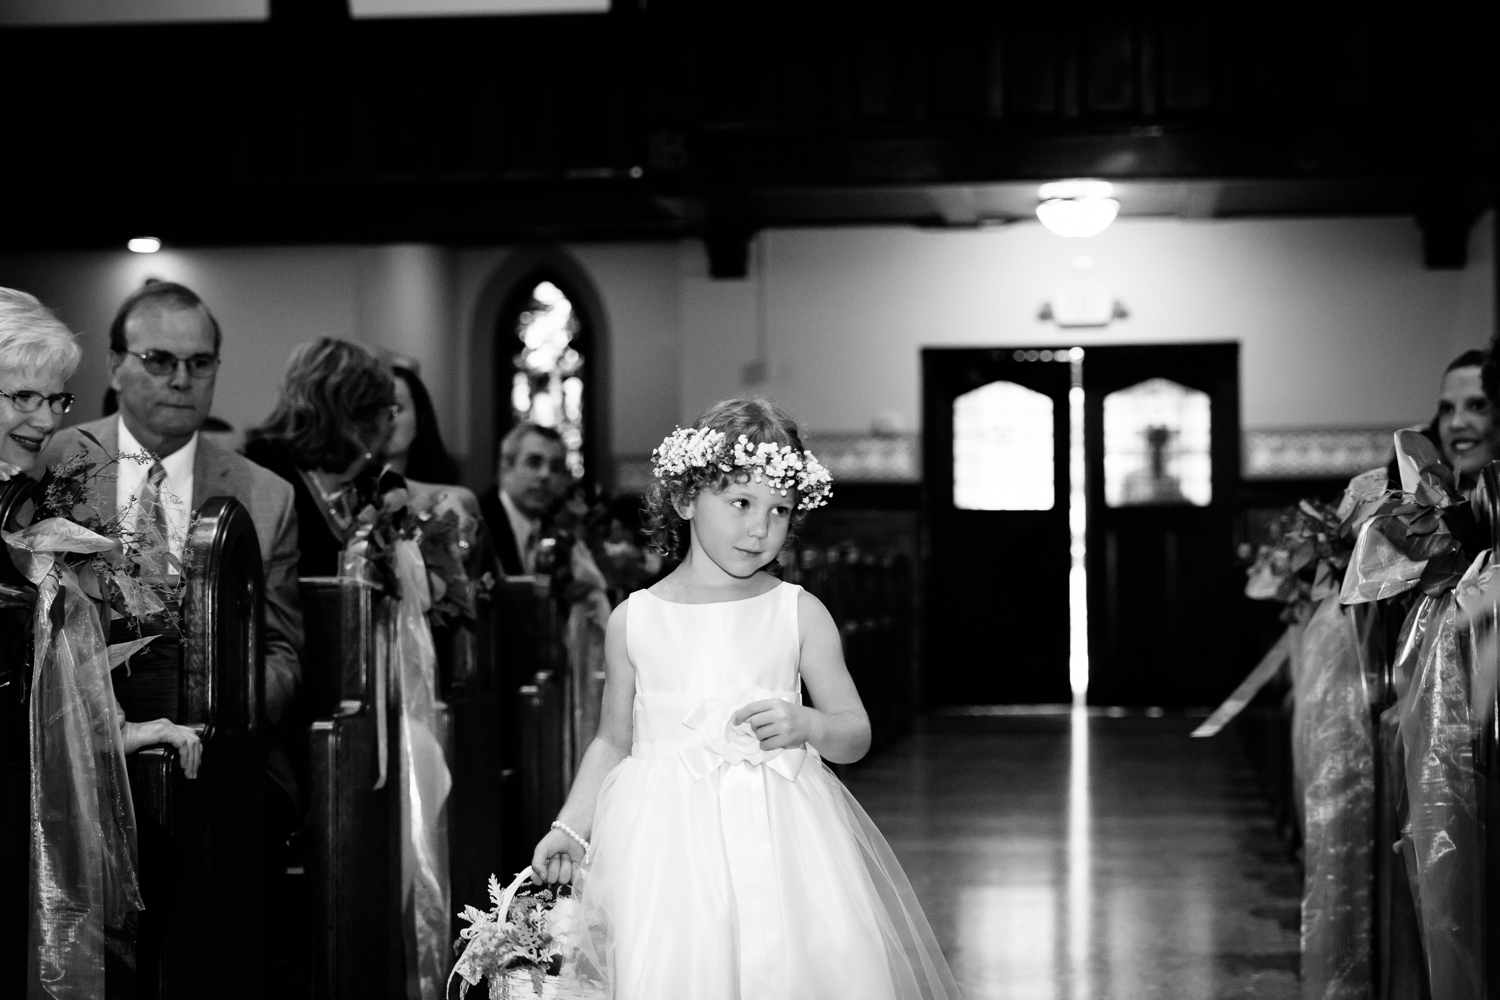 The flower girl walks down the aisle.